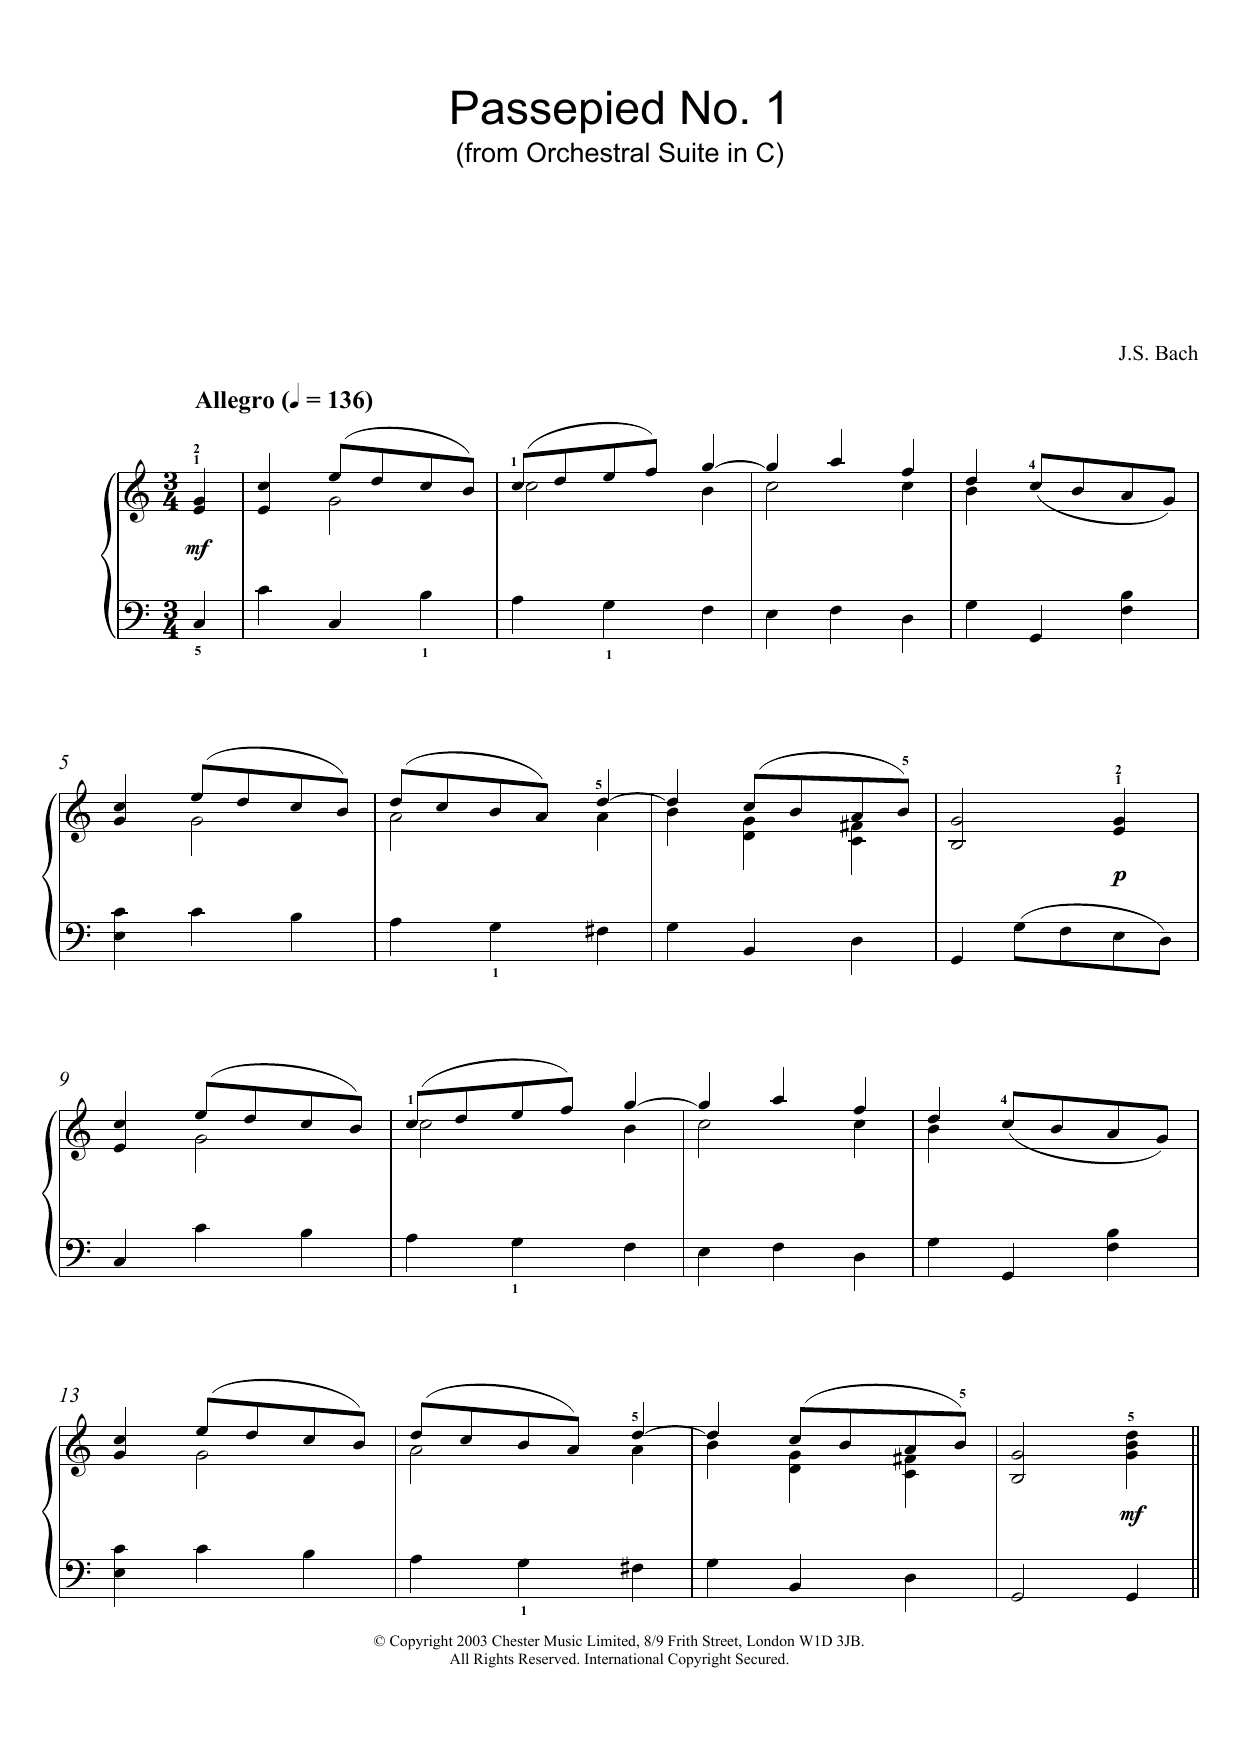 J.S. Bach Passepied No. 1 (from Orchestral Suite in C) sheet music preview music notes and score for Piano including 2 page(s)